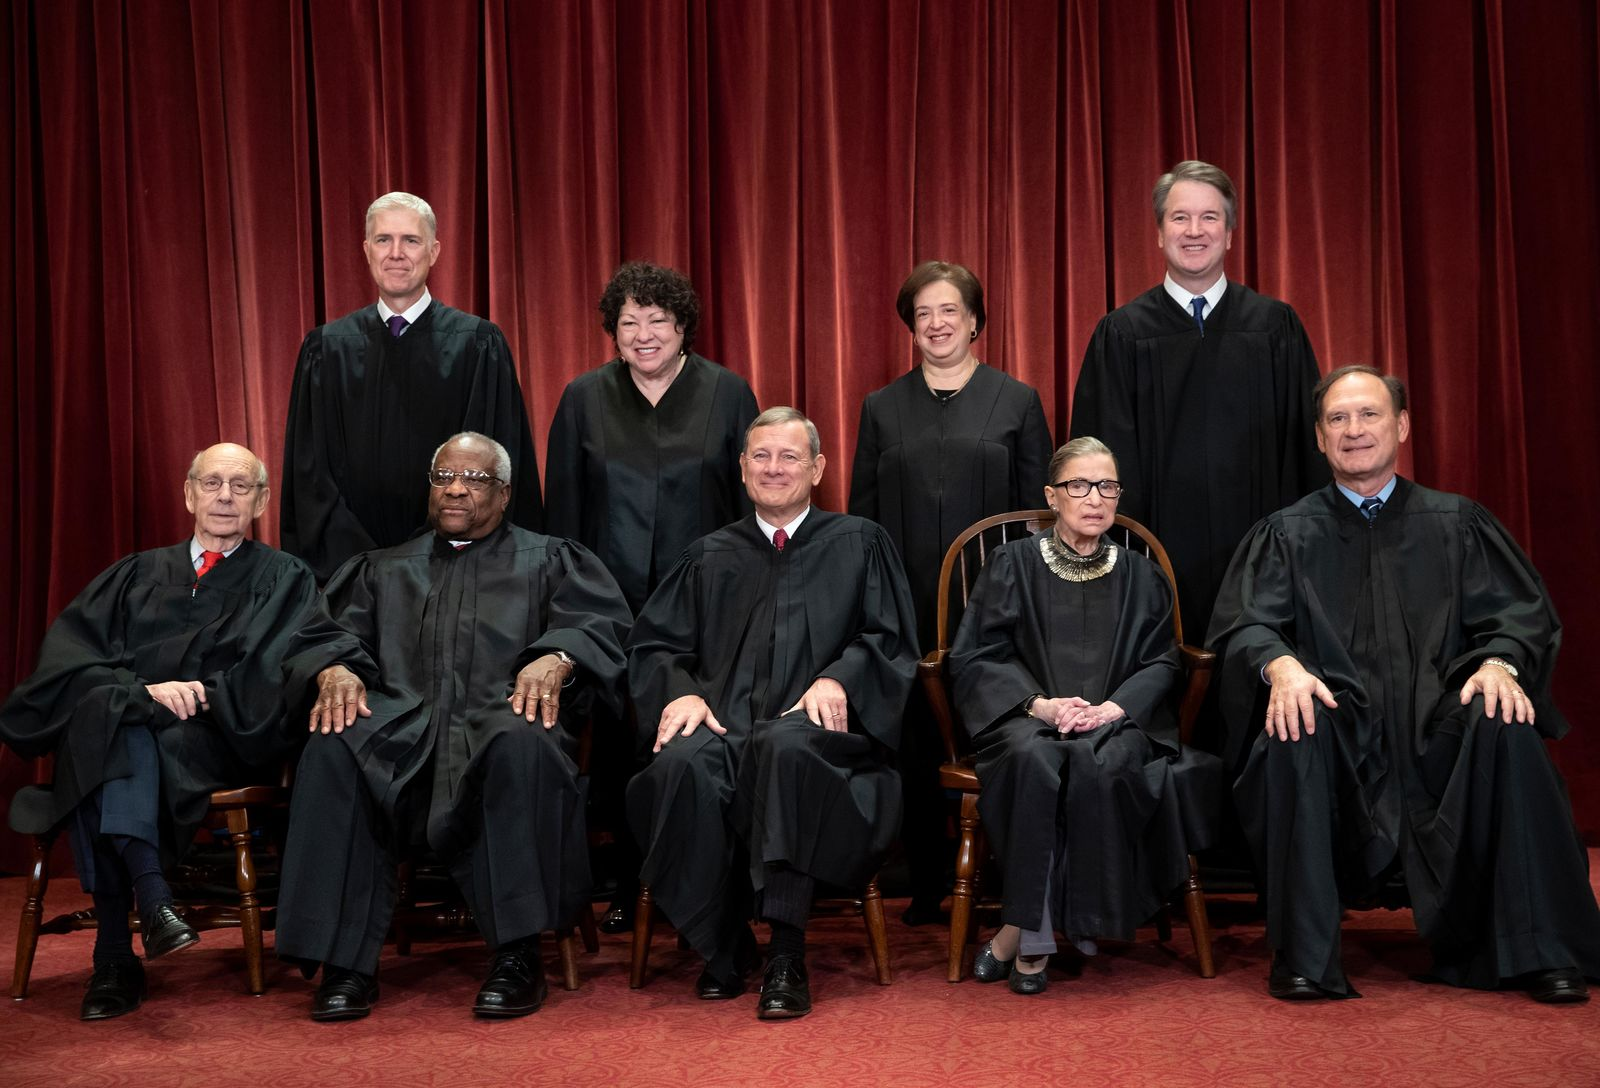 FILE - In this Nov. 30, 2018, file photo, the justices of the U.S. Supreme Court gather for a formal group portrait to include the new Associate Justice, top row, far right, at the Supreme Court Building in Washington. Seated from left: Associate Justice Stephen Breyer, Associate Justice Clarence Thomas, Chief Justice of the United States John G. Roberts, Associate Justice Ruth Bader Ginsburg and Associate Justice Samuel Alito Jr. Standing behind from left: Associate Justice Neil Gorsuch, Associate Justice Sonia Sotomayor, Associate Justice Elena Kagan and Associate Justice Brett M. Kavanaugh. (AP Photo/J. Scott Applewhite, File)